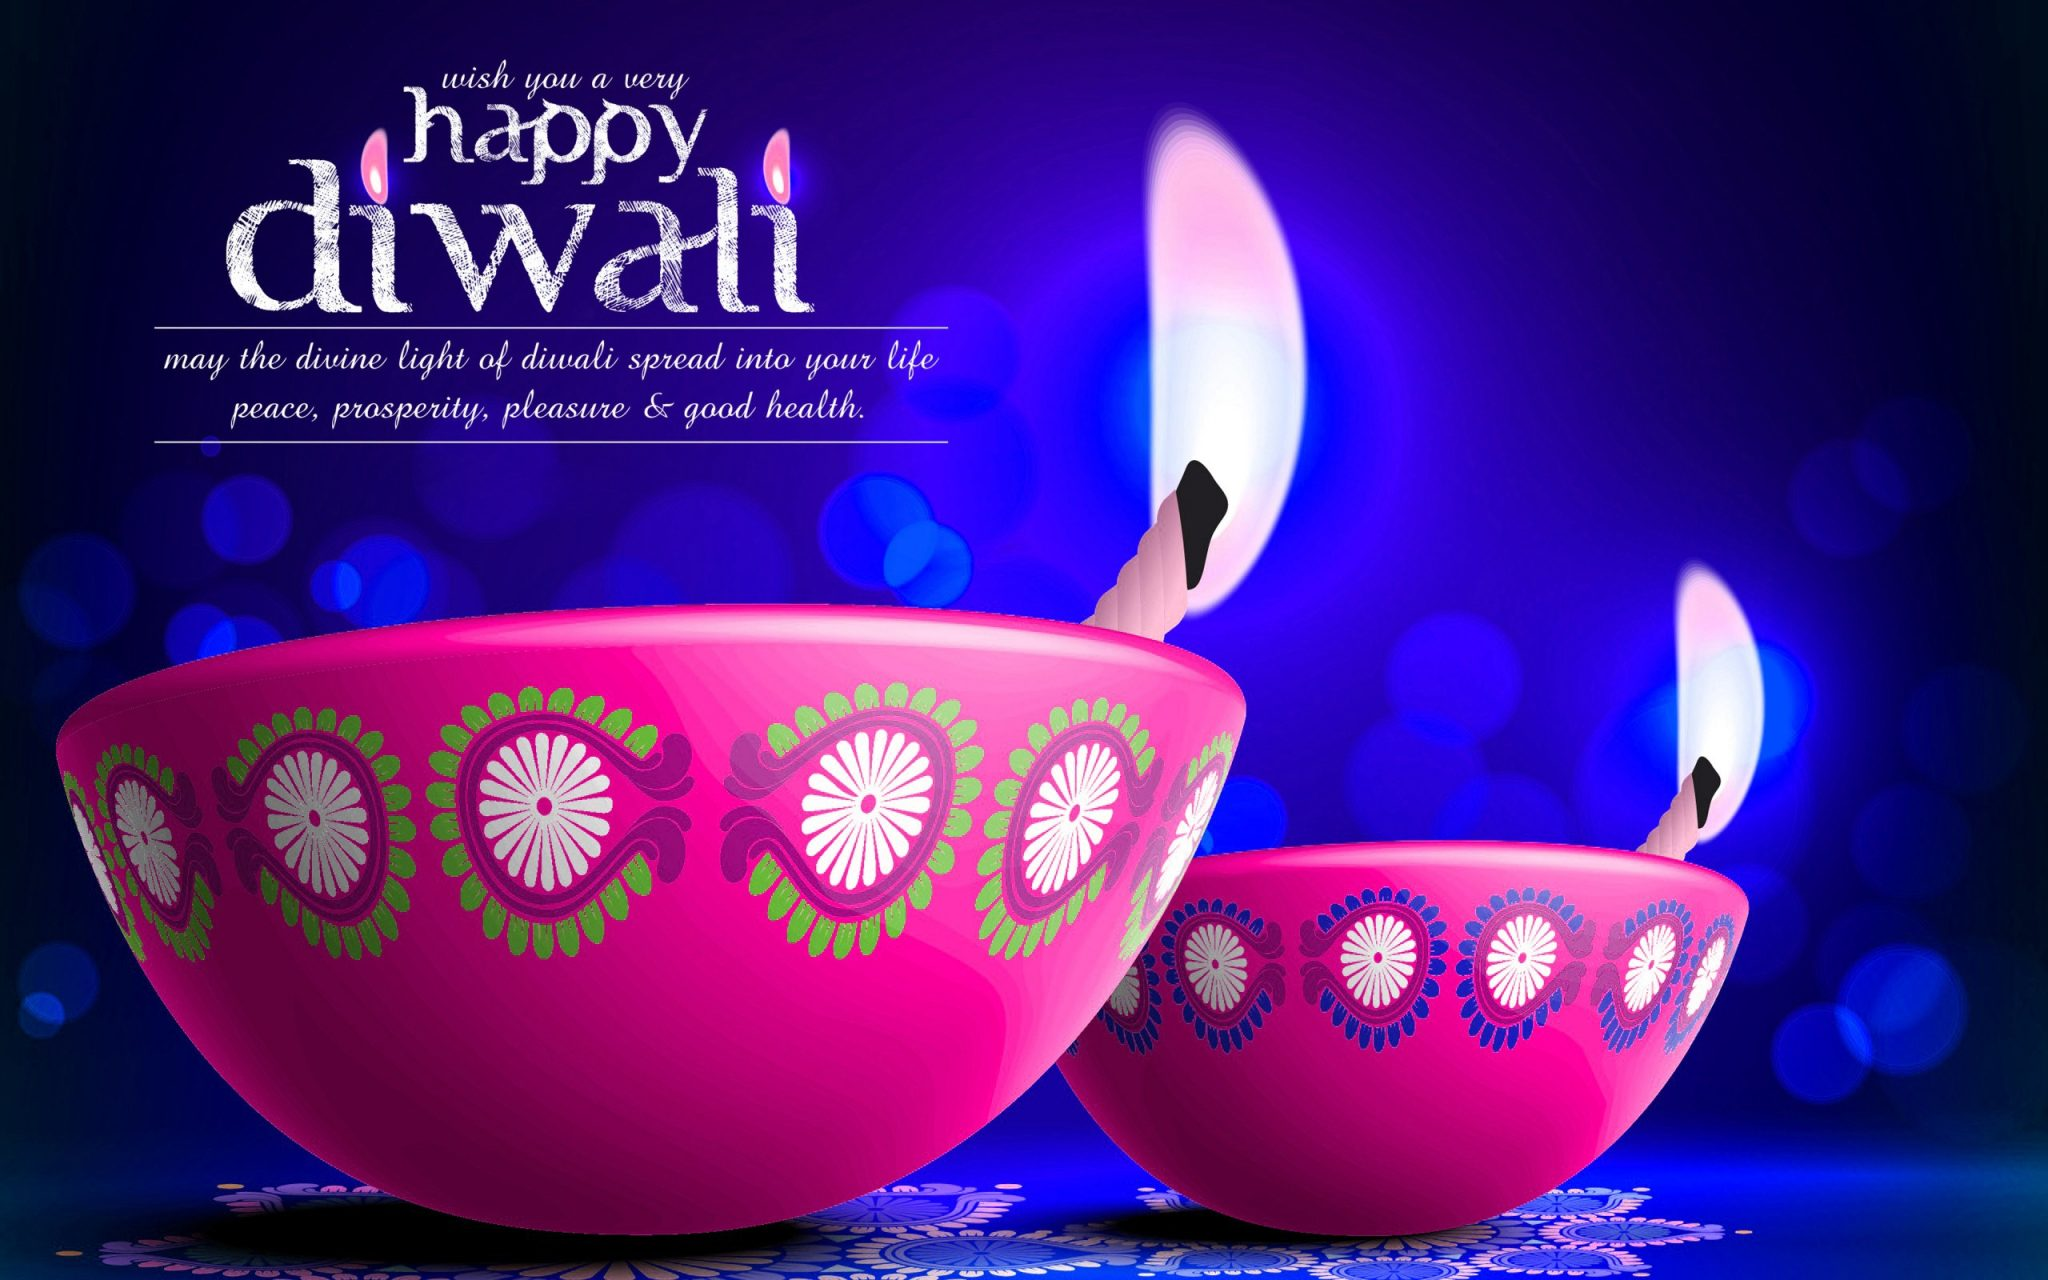 Happy Diwali 2016 Messages